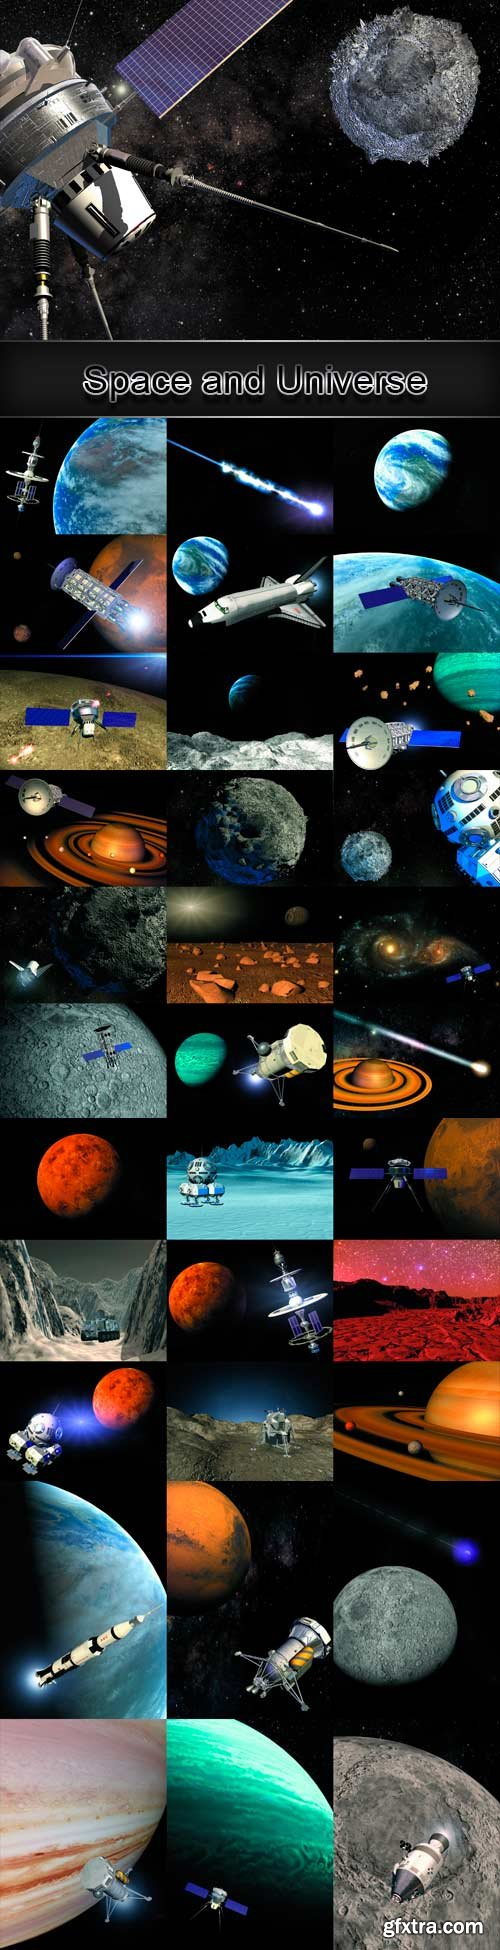 Space and Universe